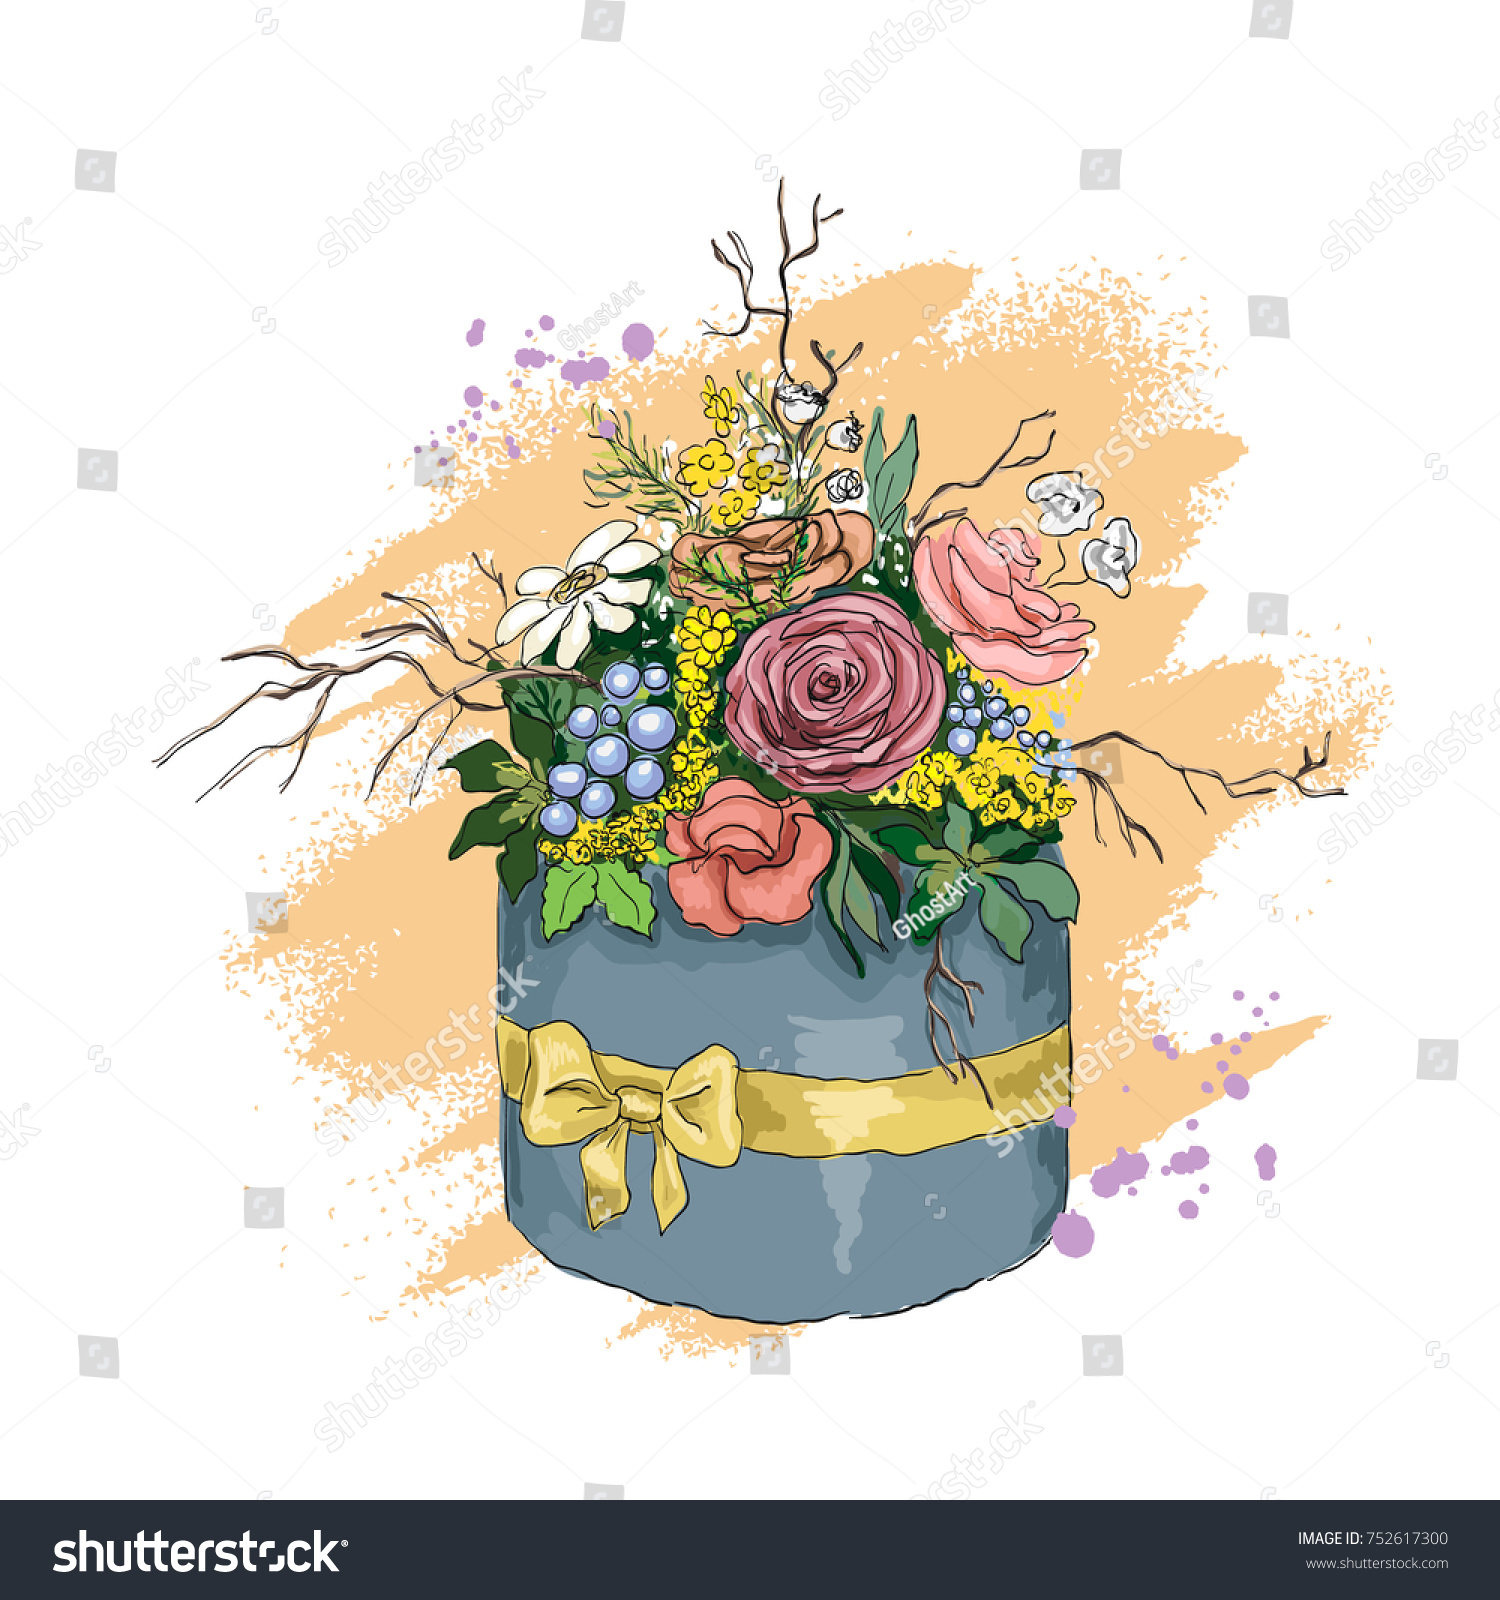 Beautiful hand drawn flowers box bouquet stock vector royalty free beautiful hand drawn flowers box a bouquet of flowers in a stylish box template izmirmasajfo